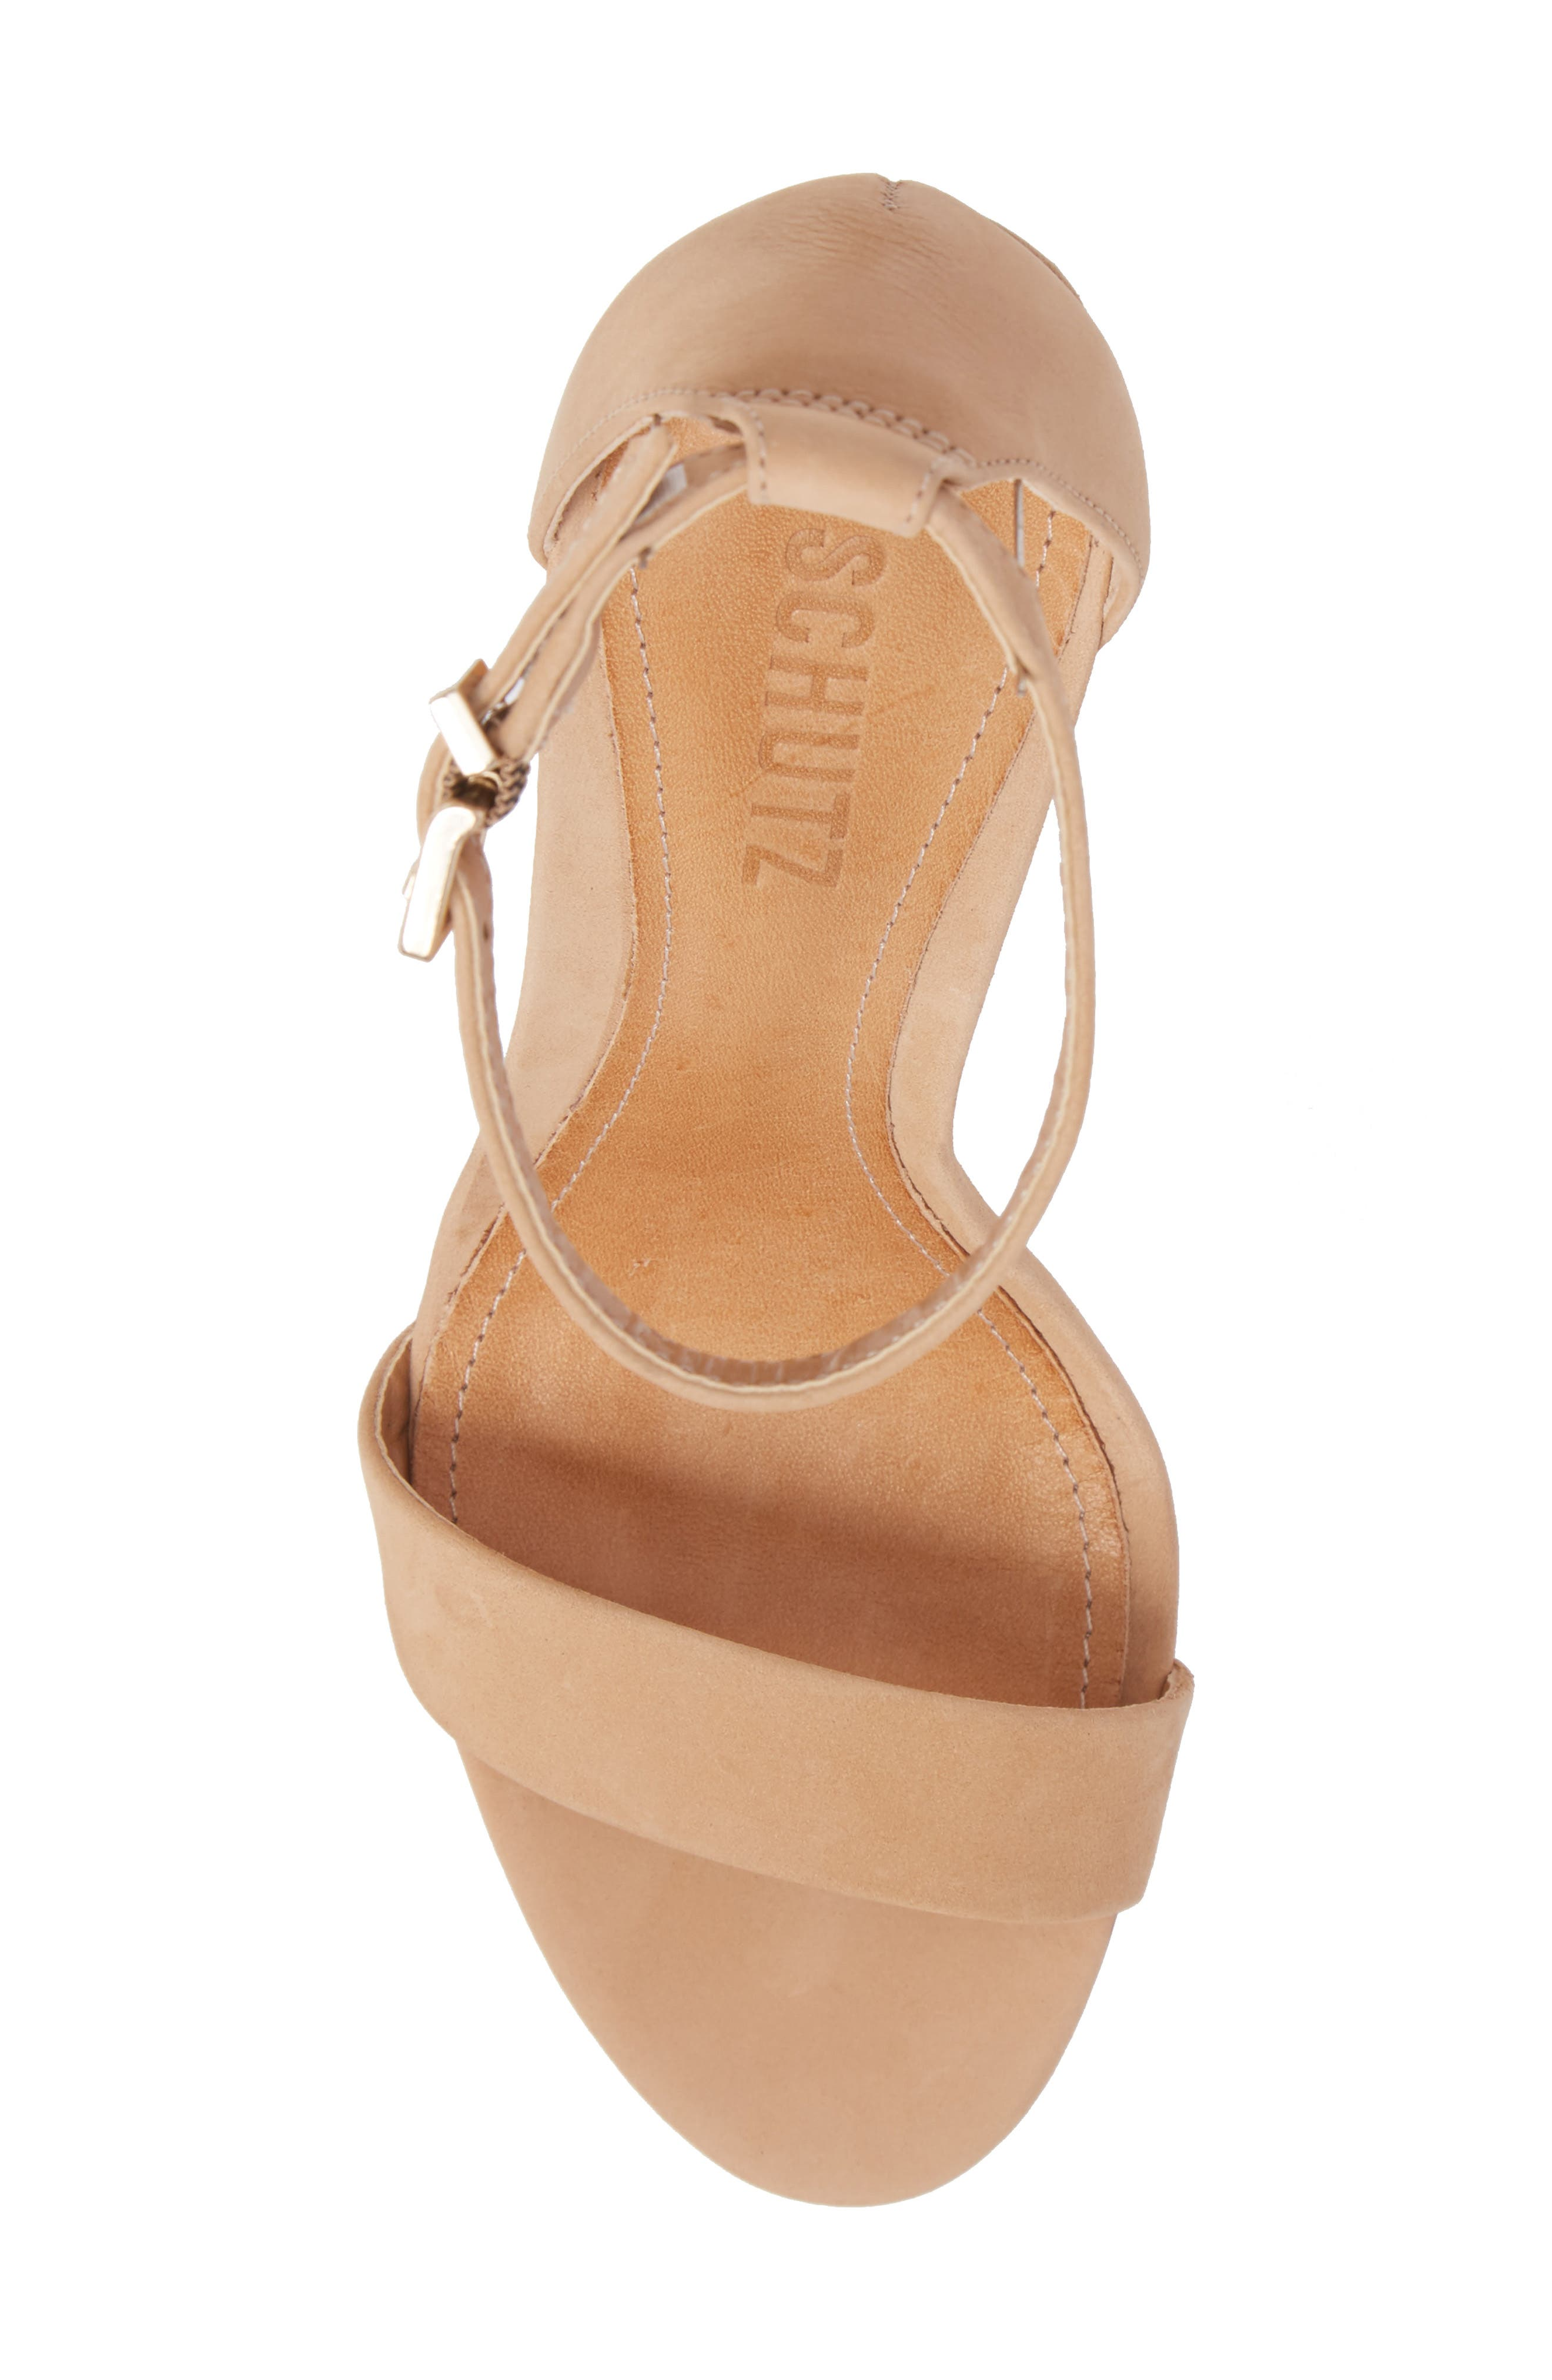 Enida Strappy Sandal,                             Alternate thumbnail 5, color,                             LIGHTWOOD NUBUCK LEATHER